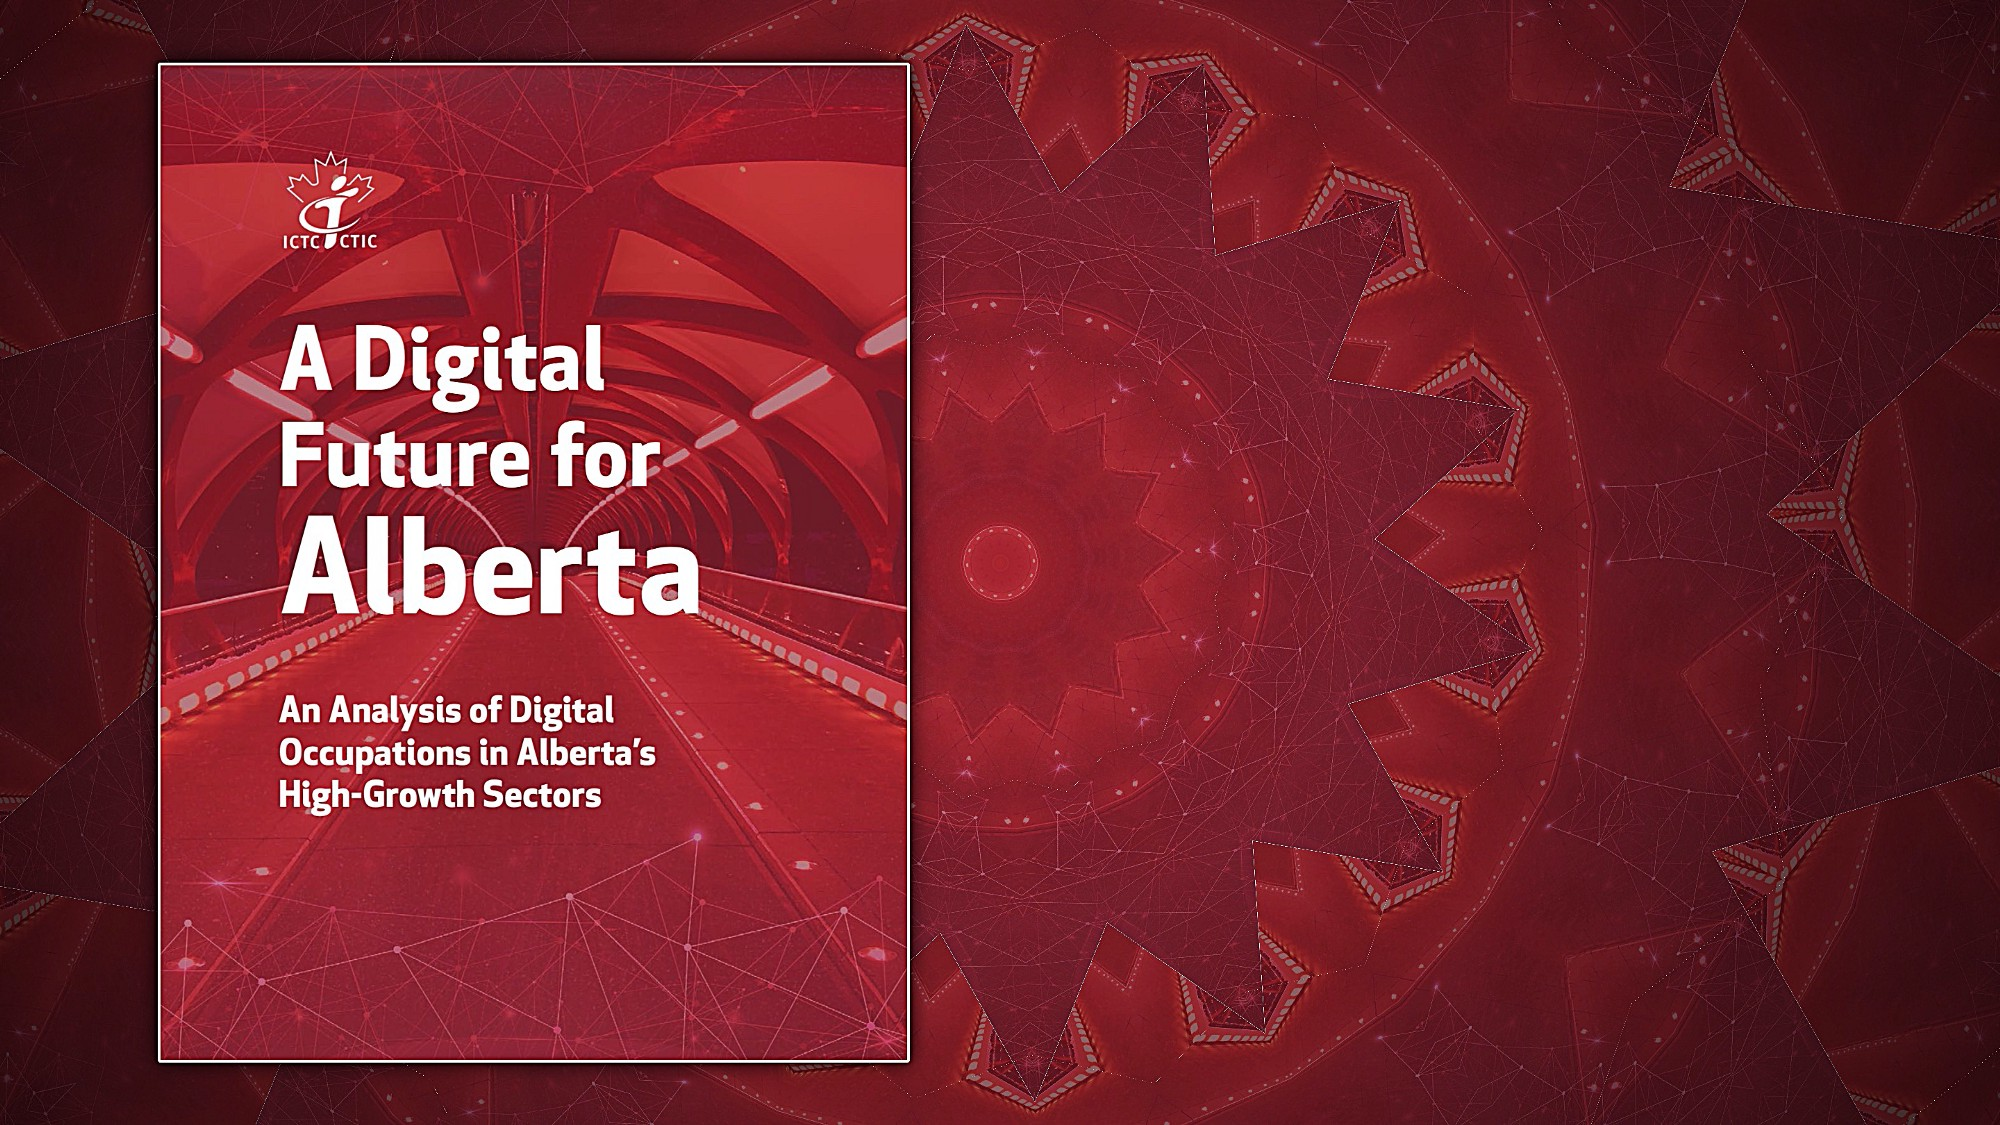 Alberta Digital Economy Employment: Course Correction in Uncertain Times